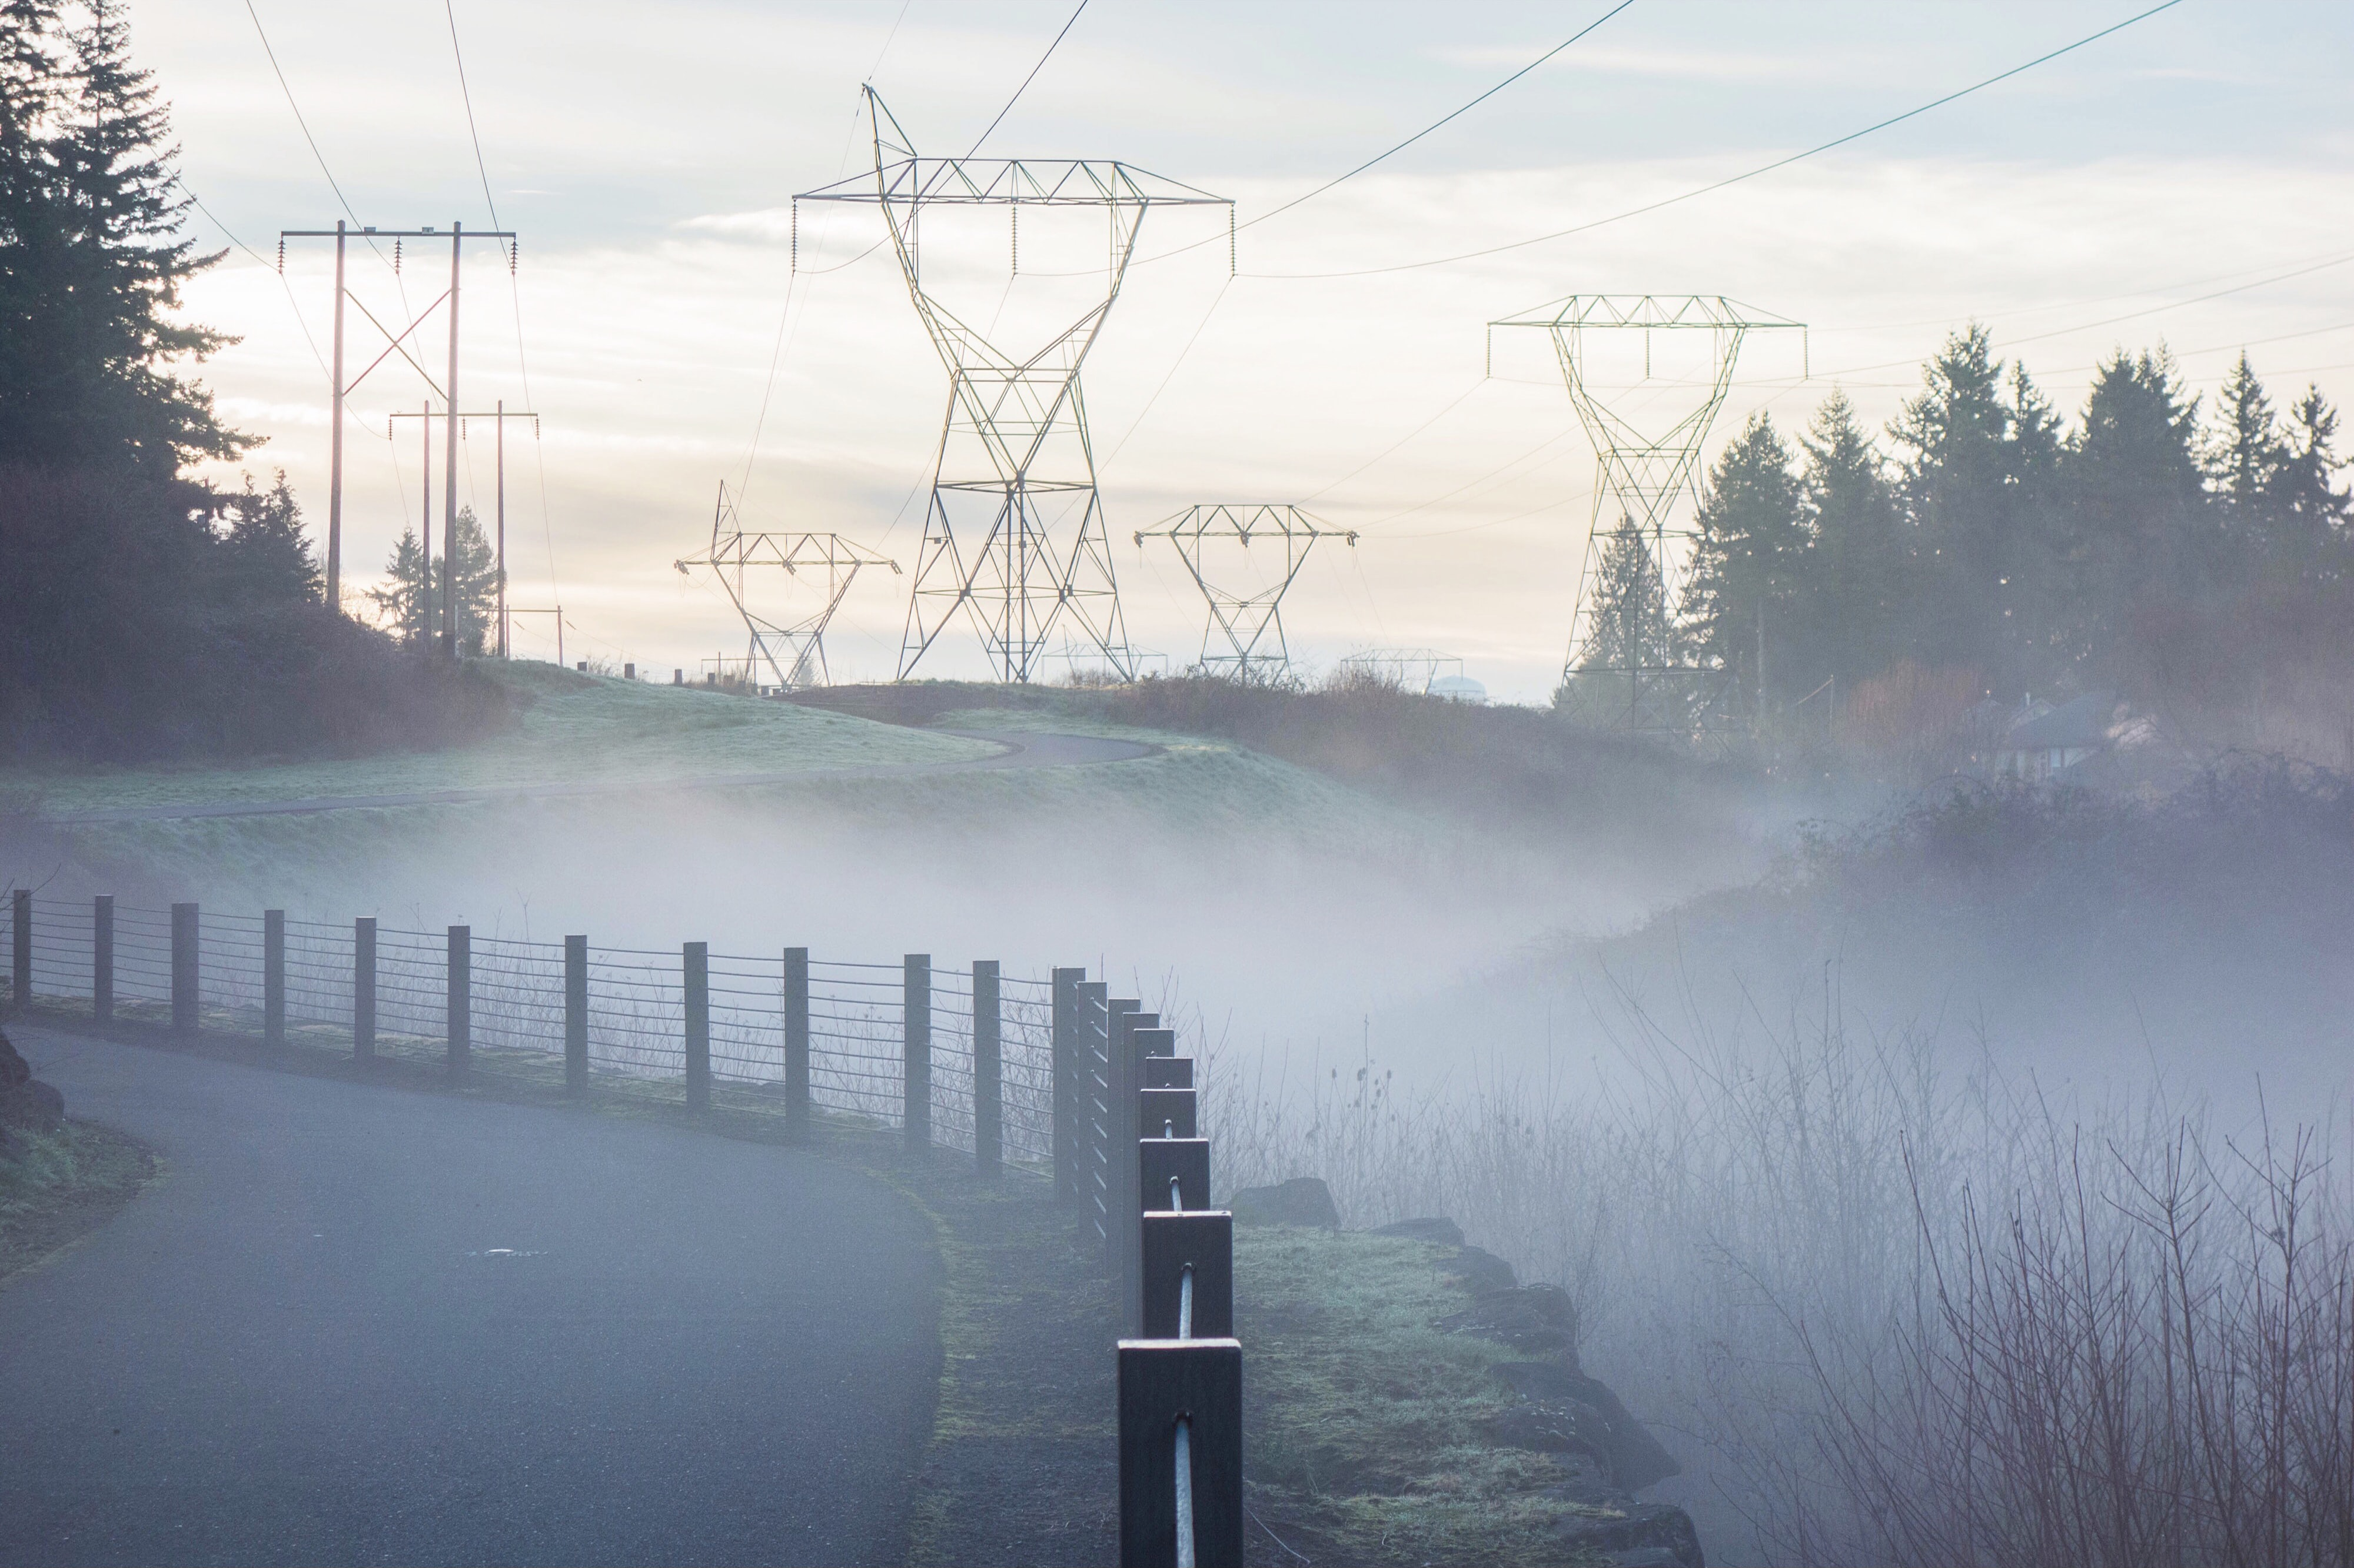 A foggy landscape with powerlines running through a field